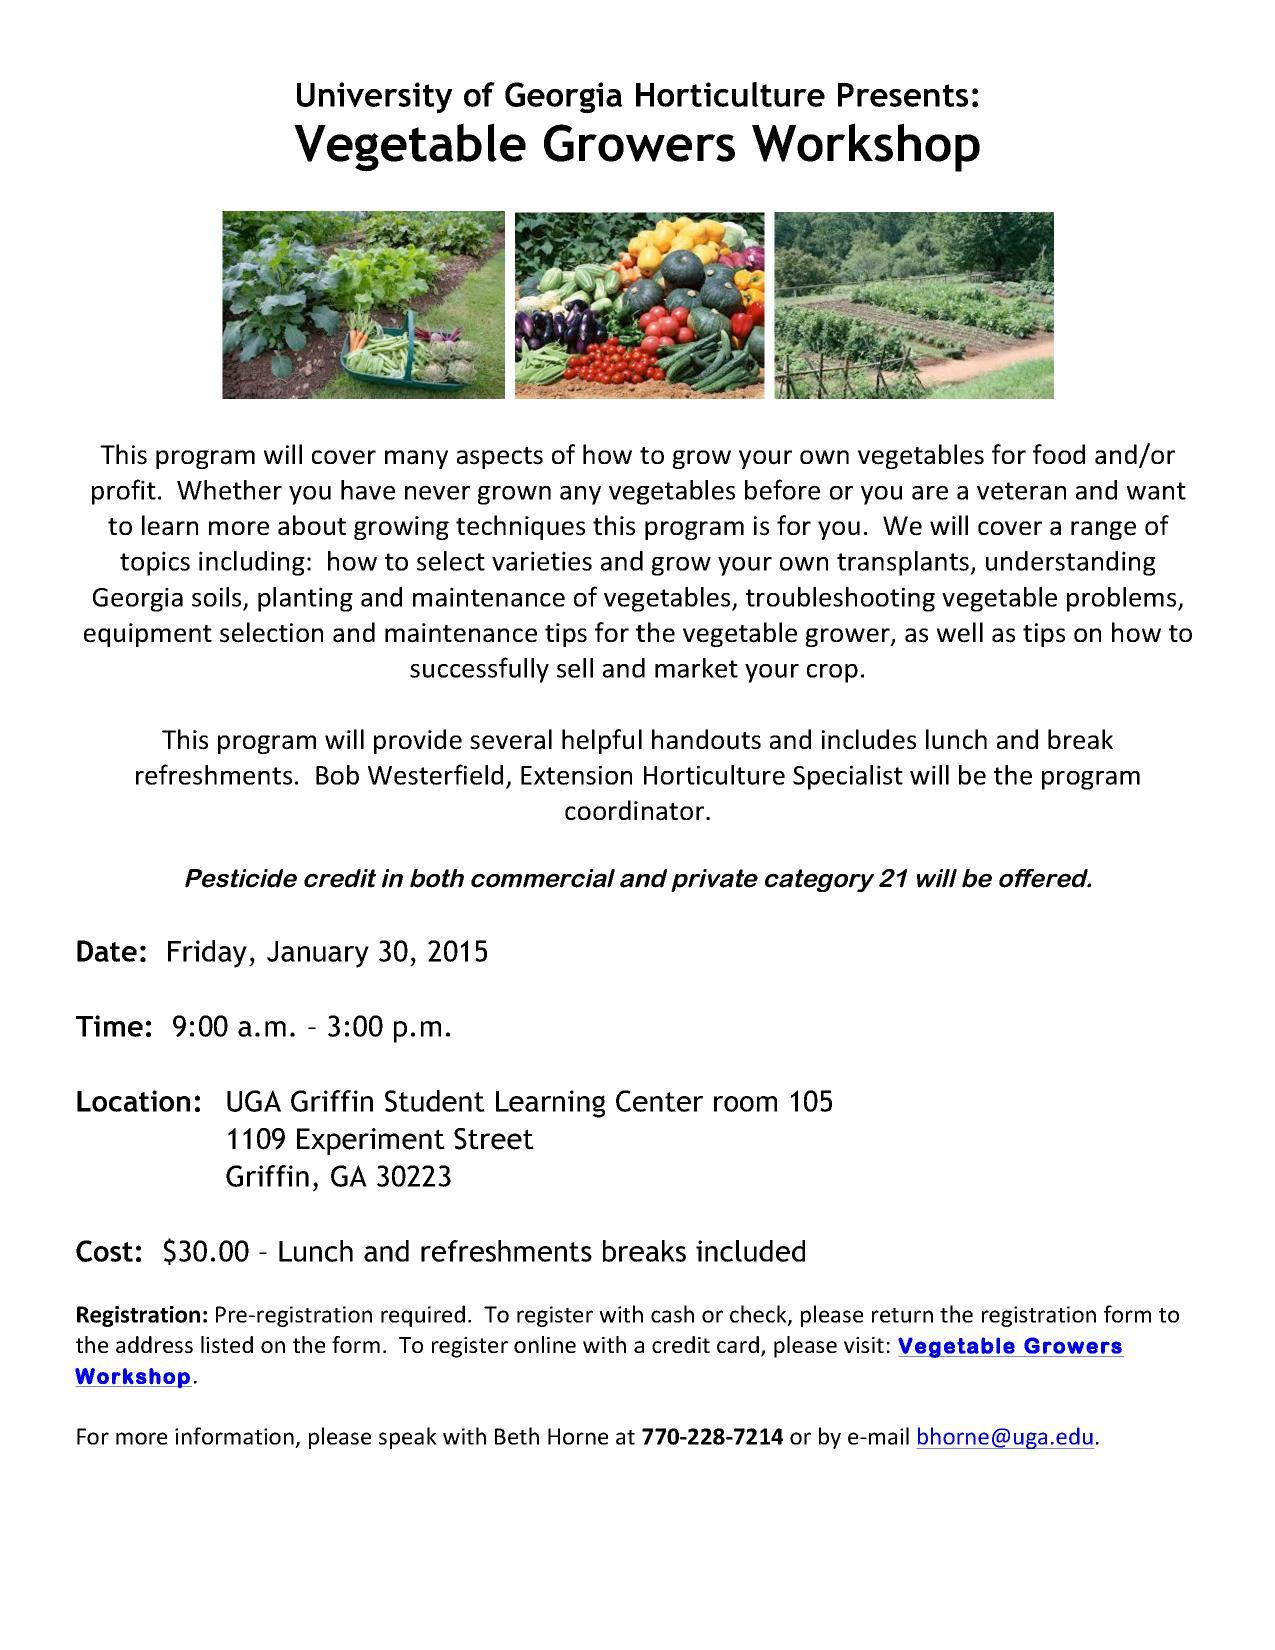 1275x1650 2015 Invitation, in Vegetable Growers Workshop, by UGA Horticulture, for OkraParadiseFarms.com, 30 January 2015